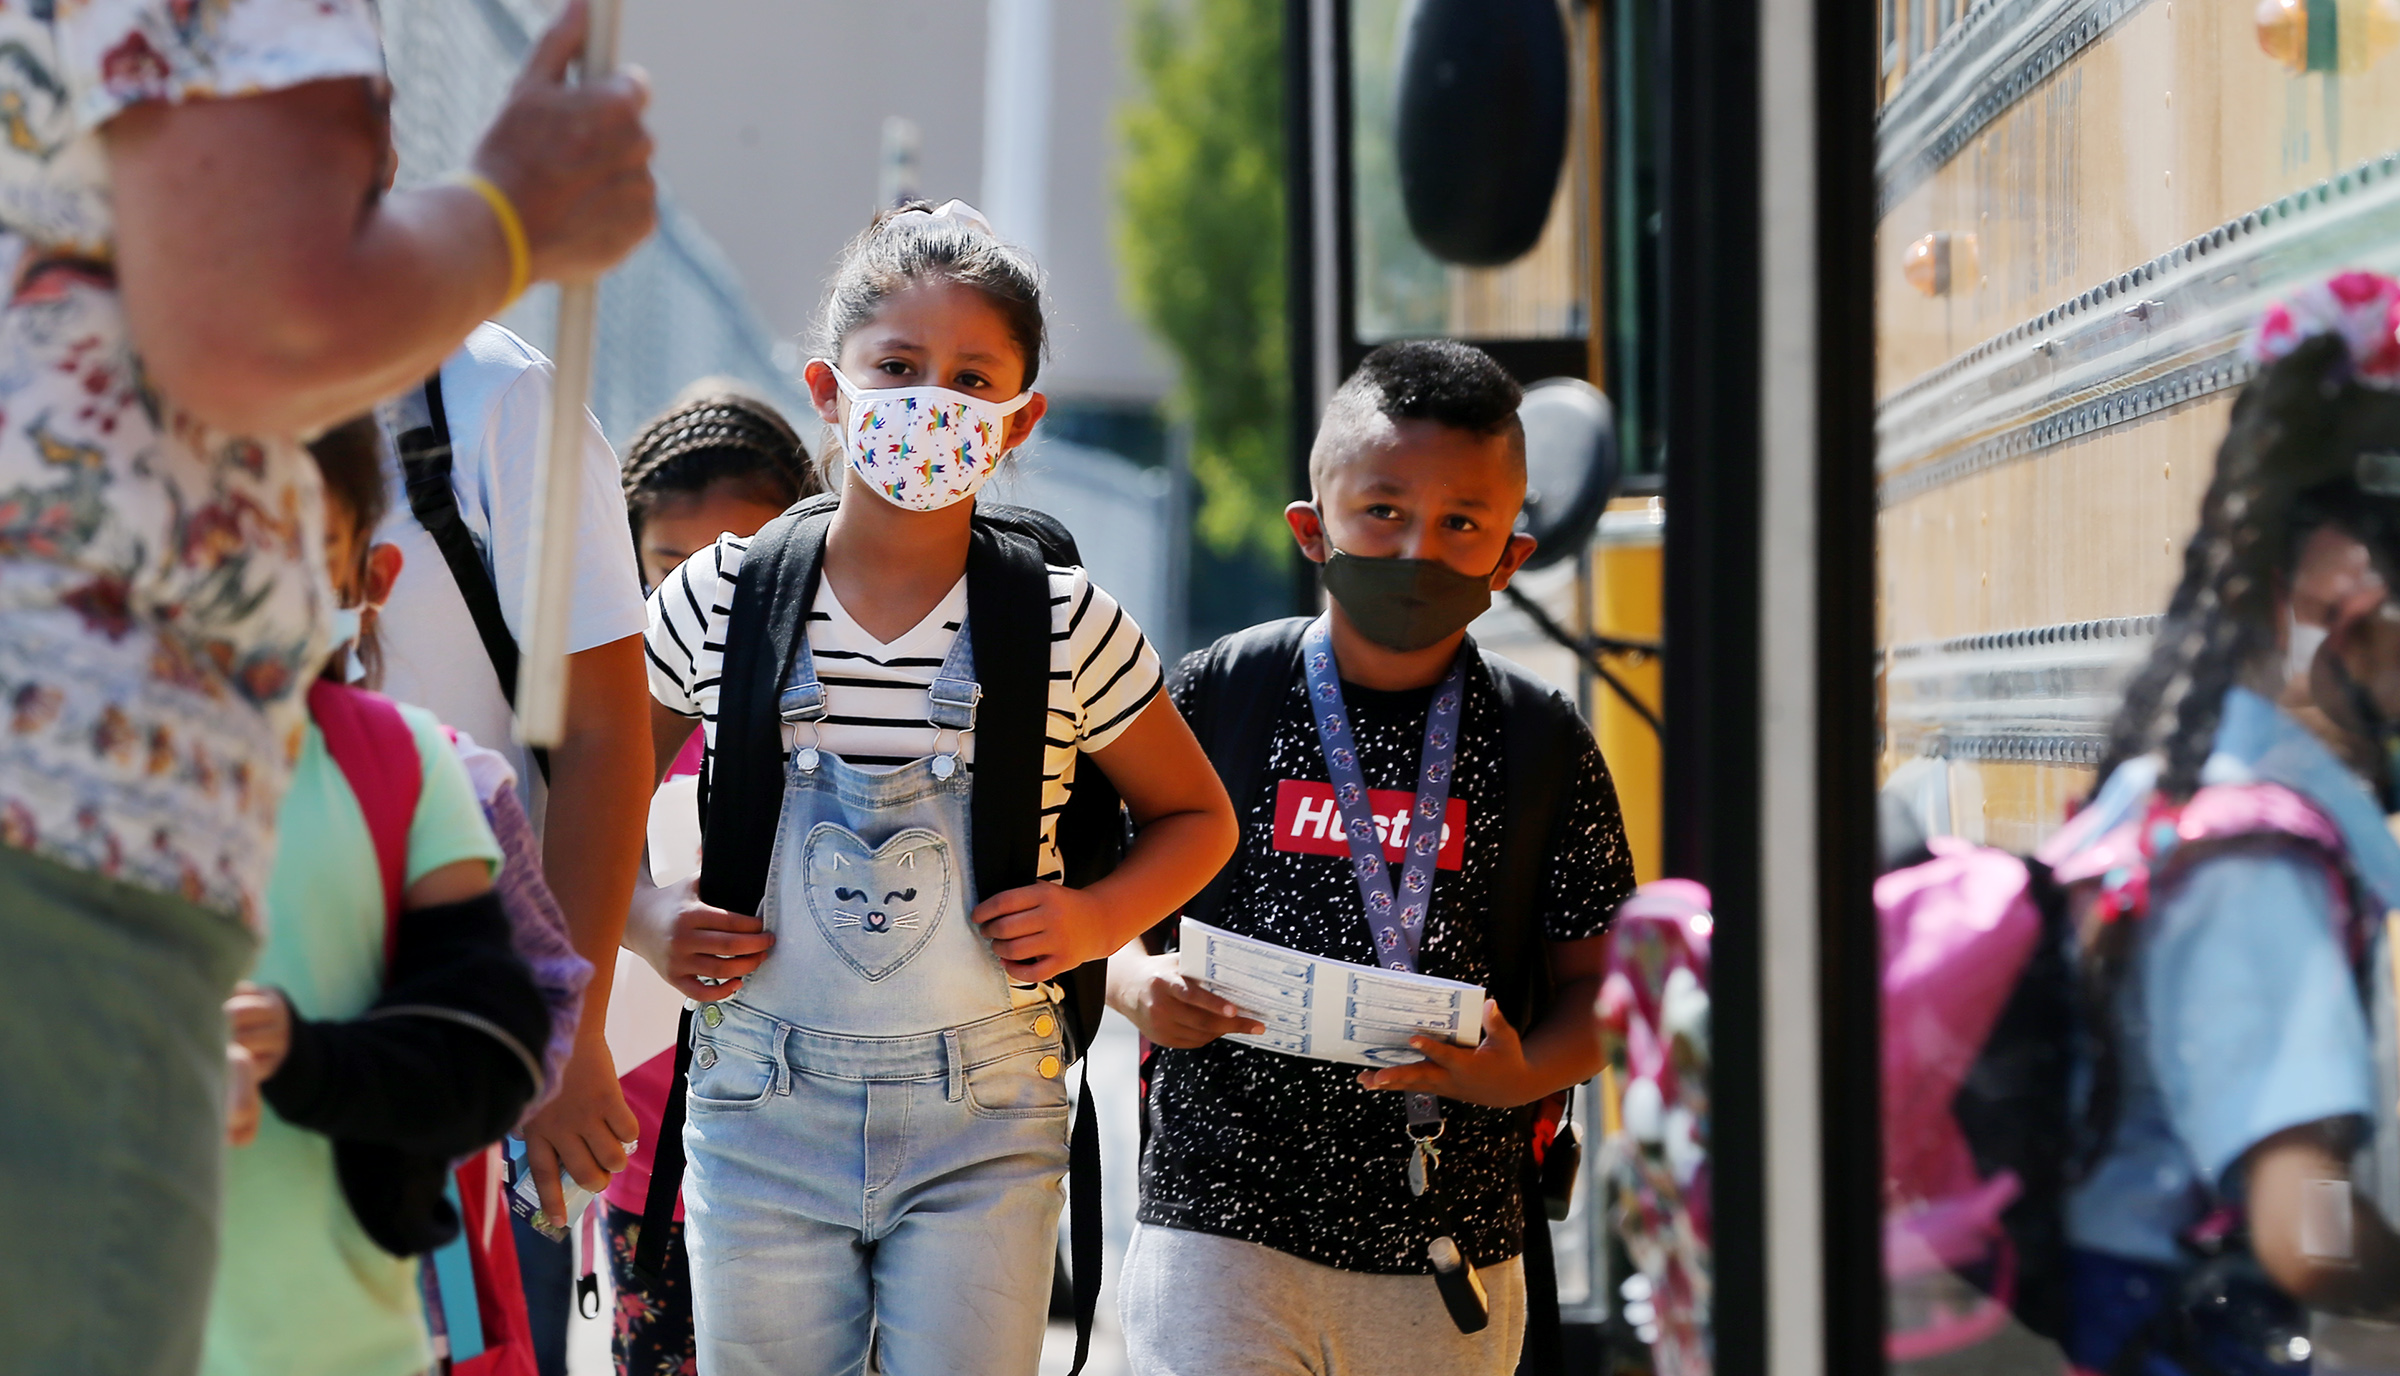 Students at Woodrow Wilson Elementary School in South Salt Lake wear masks as they get on a bus to go home after their first day of school on Aug. 24, 2020.